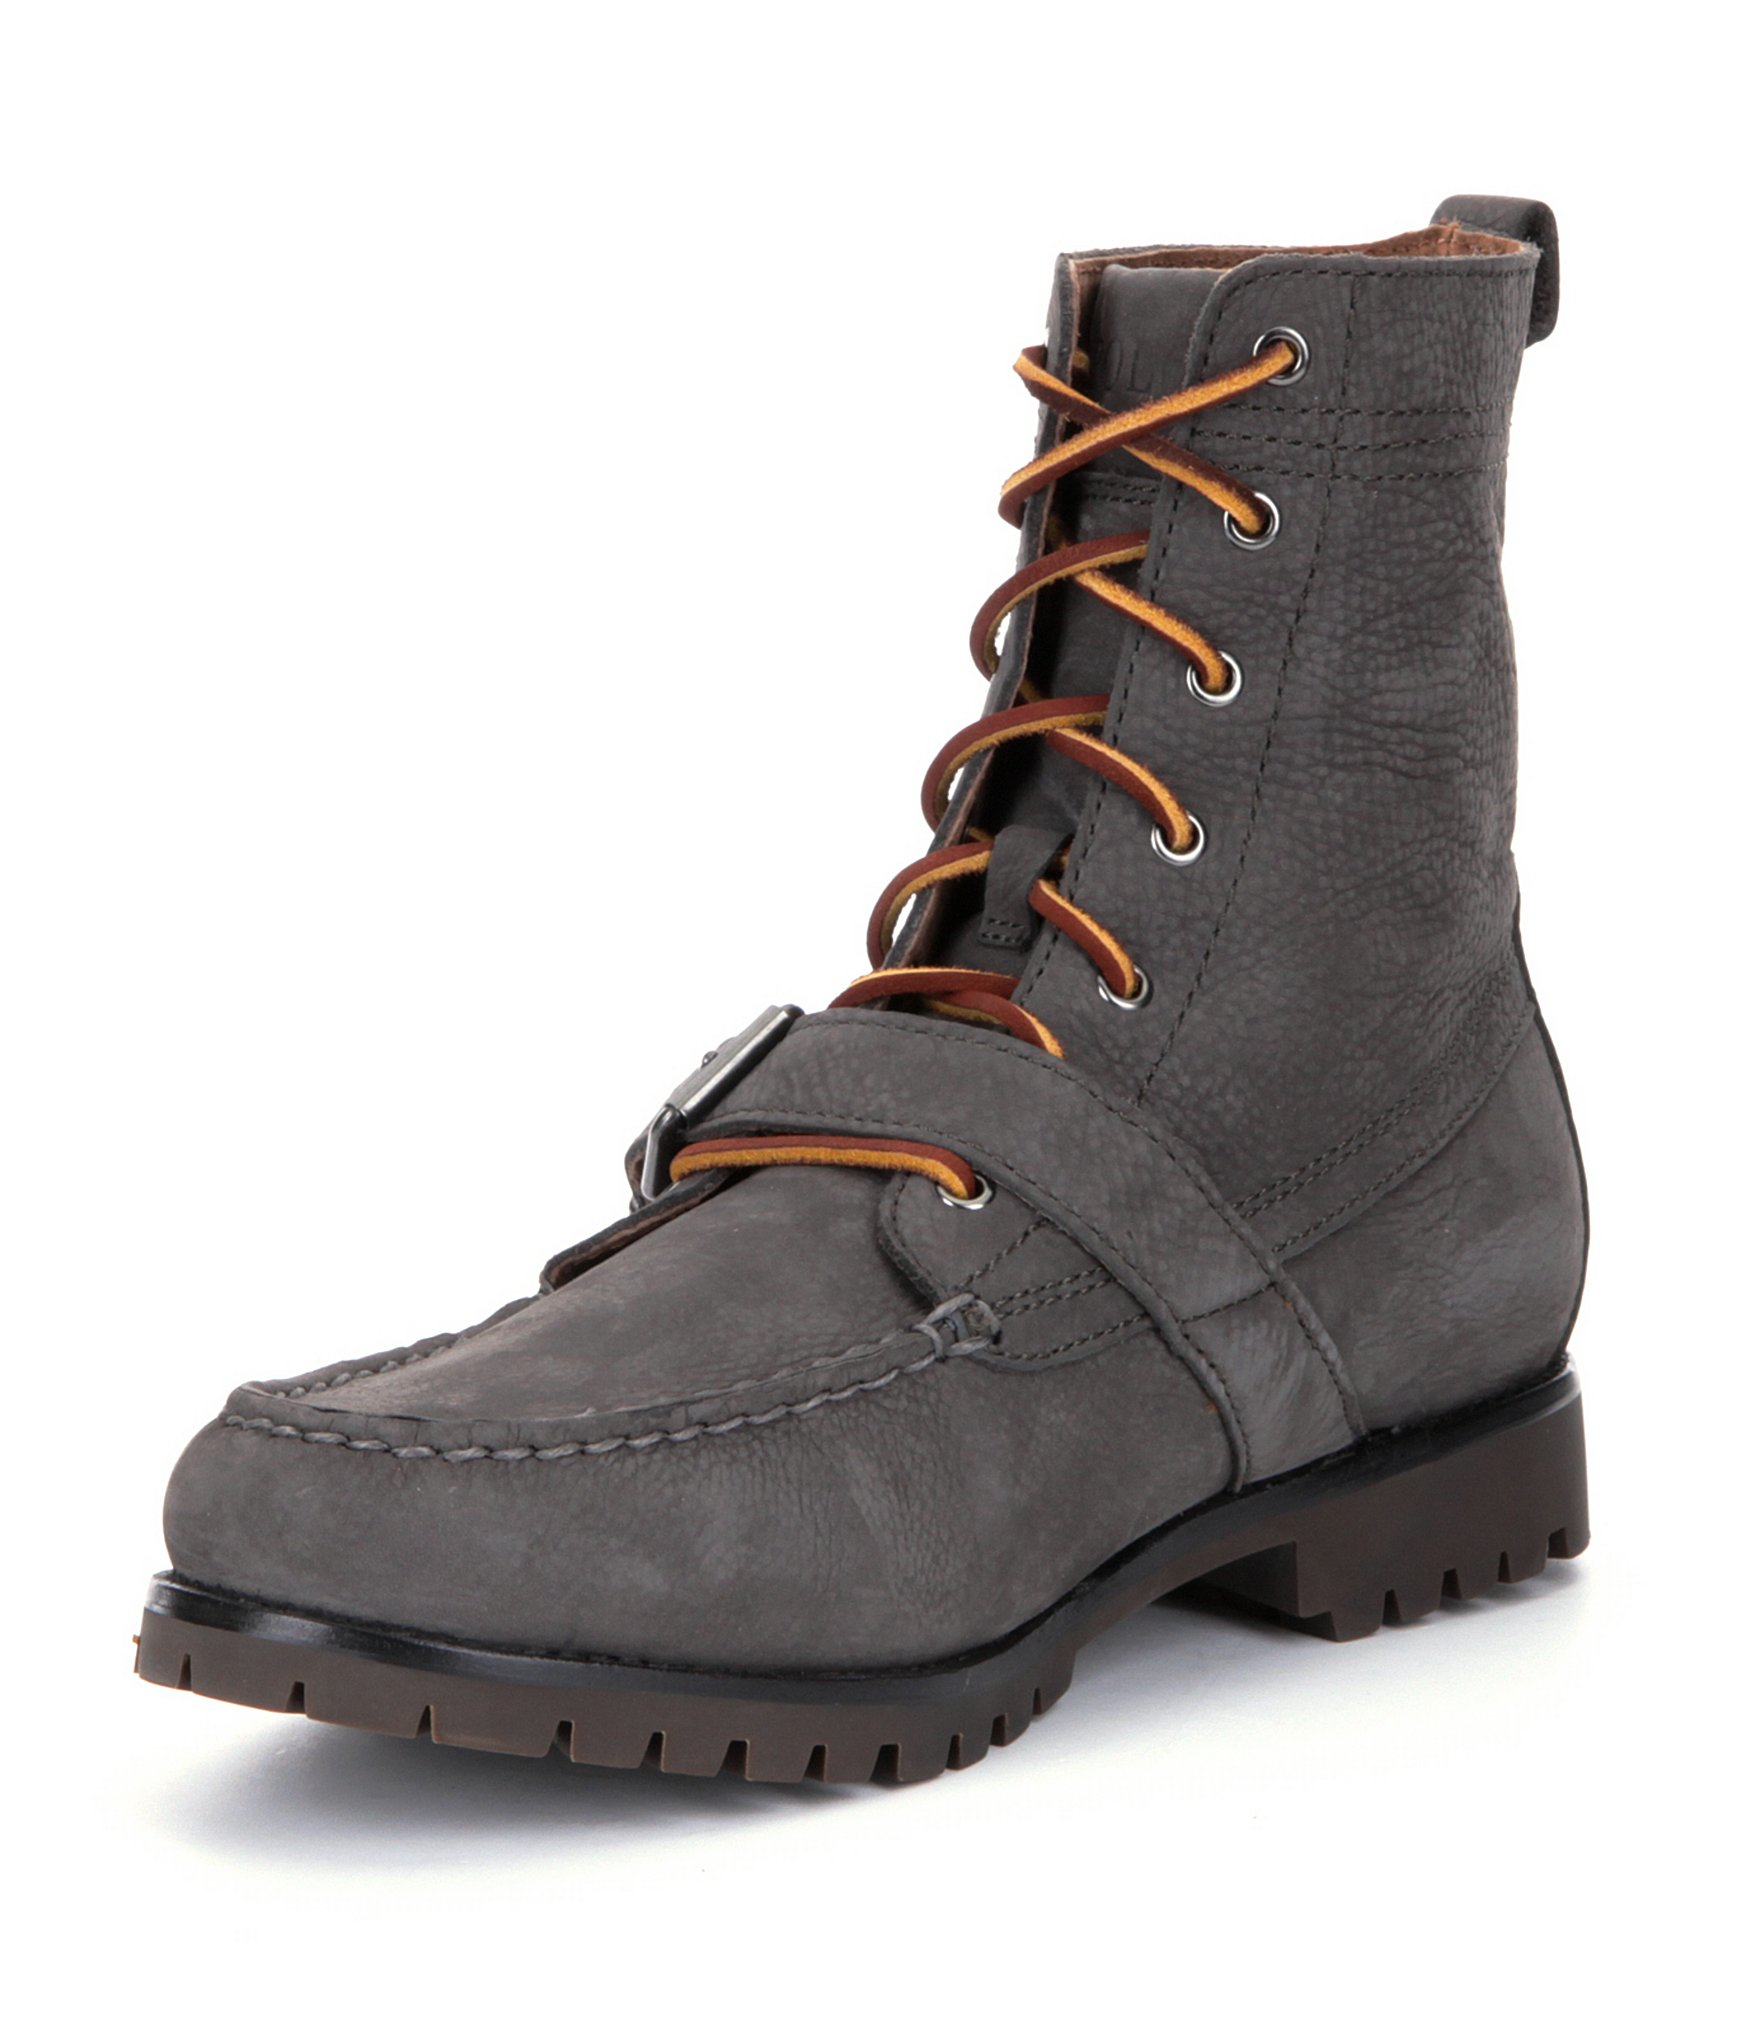 Lyst Polo Ralph Lauren Ranger Boots In Gray For Men